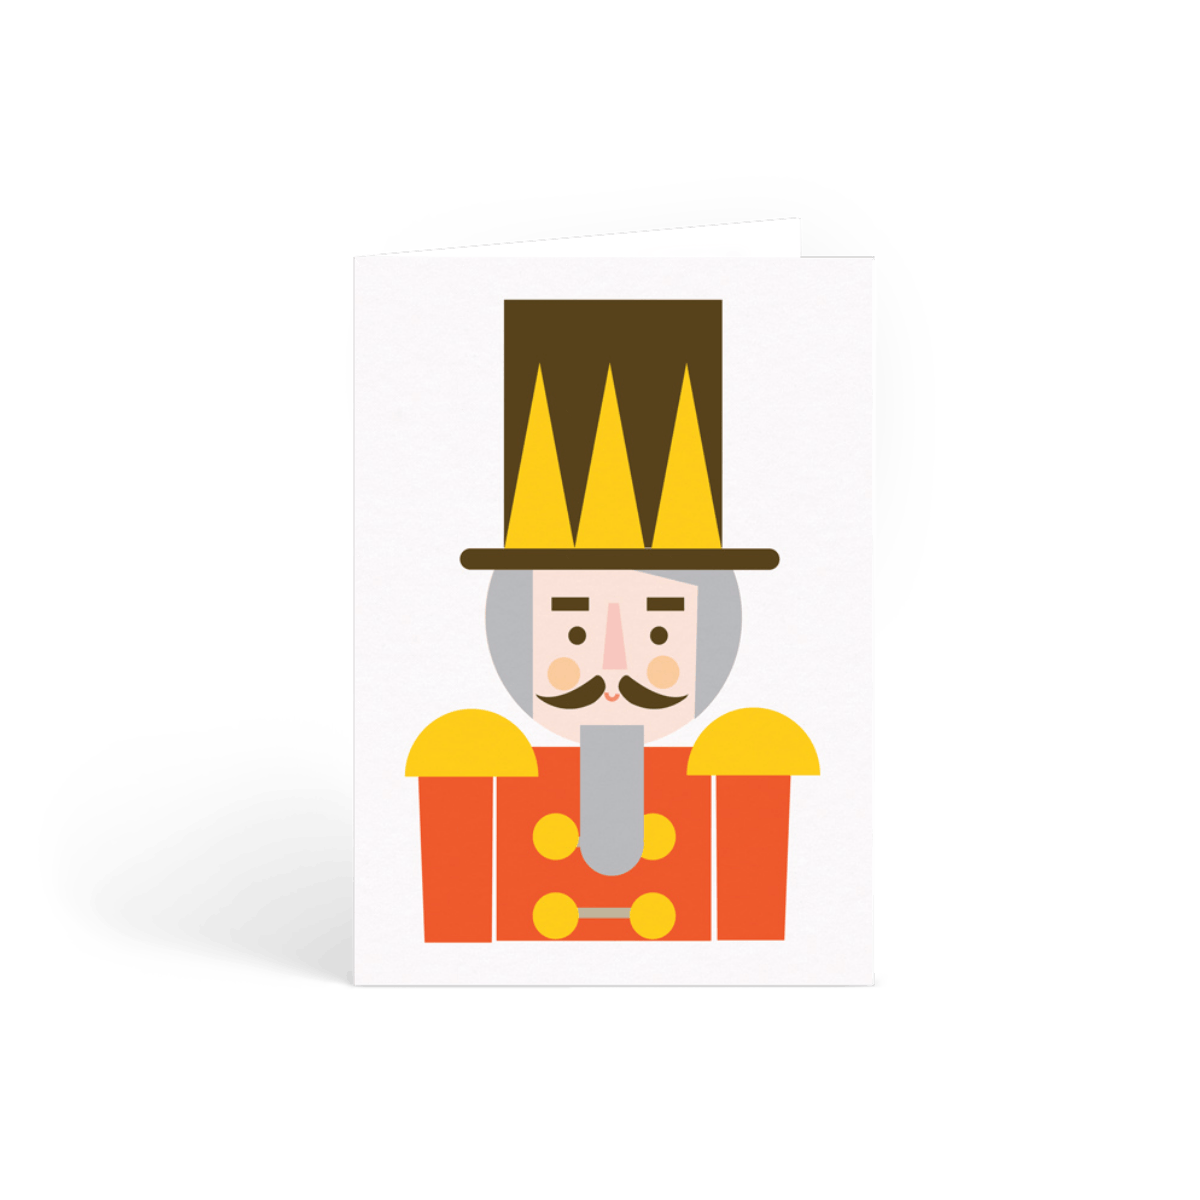 Https%3a%2f%2fwww.papier.com%2fproduct image%2f31251%2f2%2fchristmas nutcracker 7849 front 1510325733.png?ixlib=rb 1.1